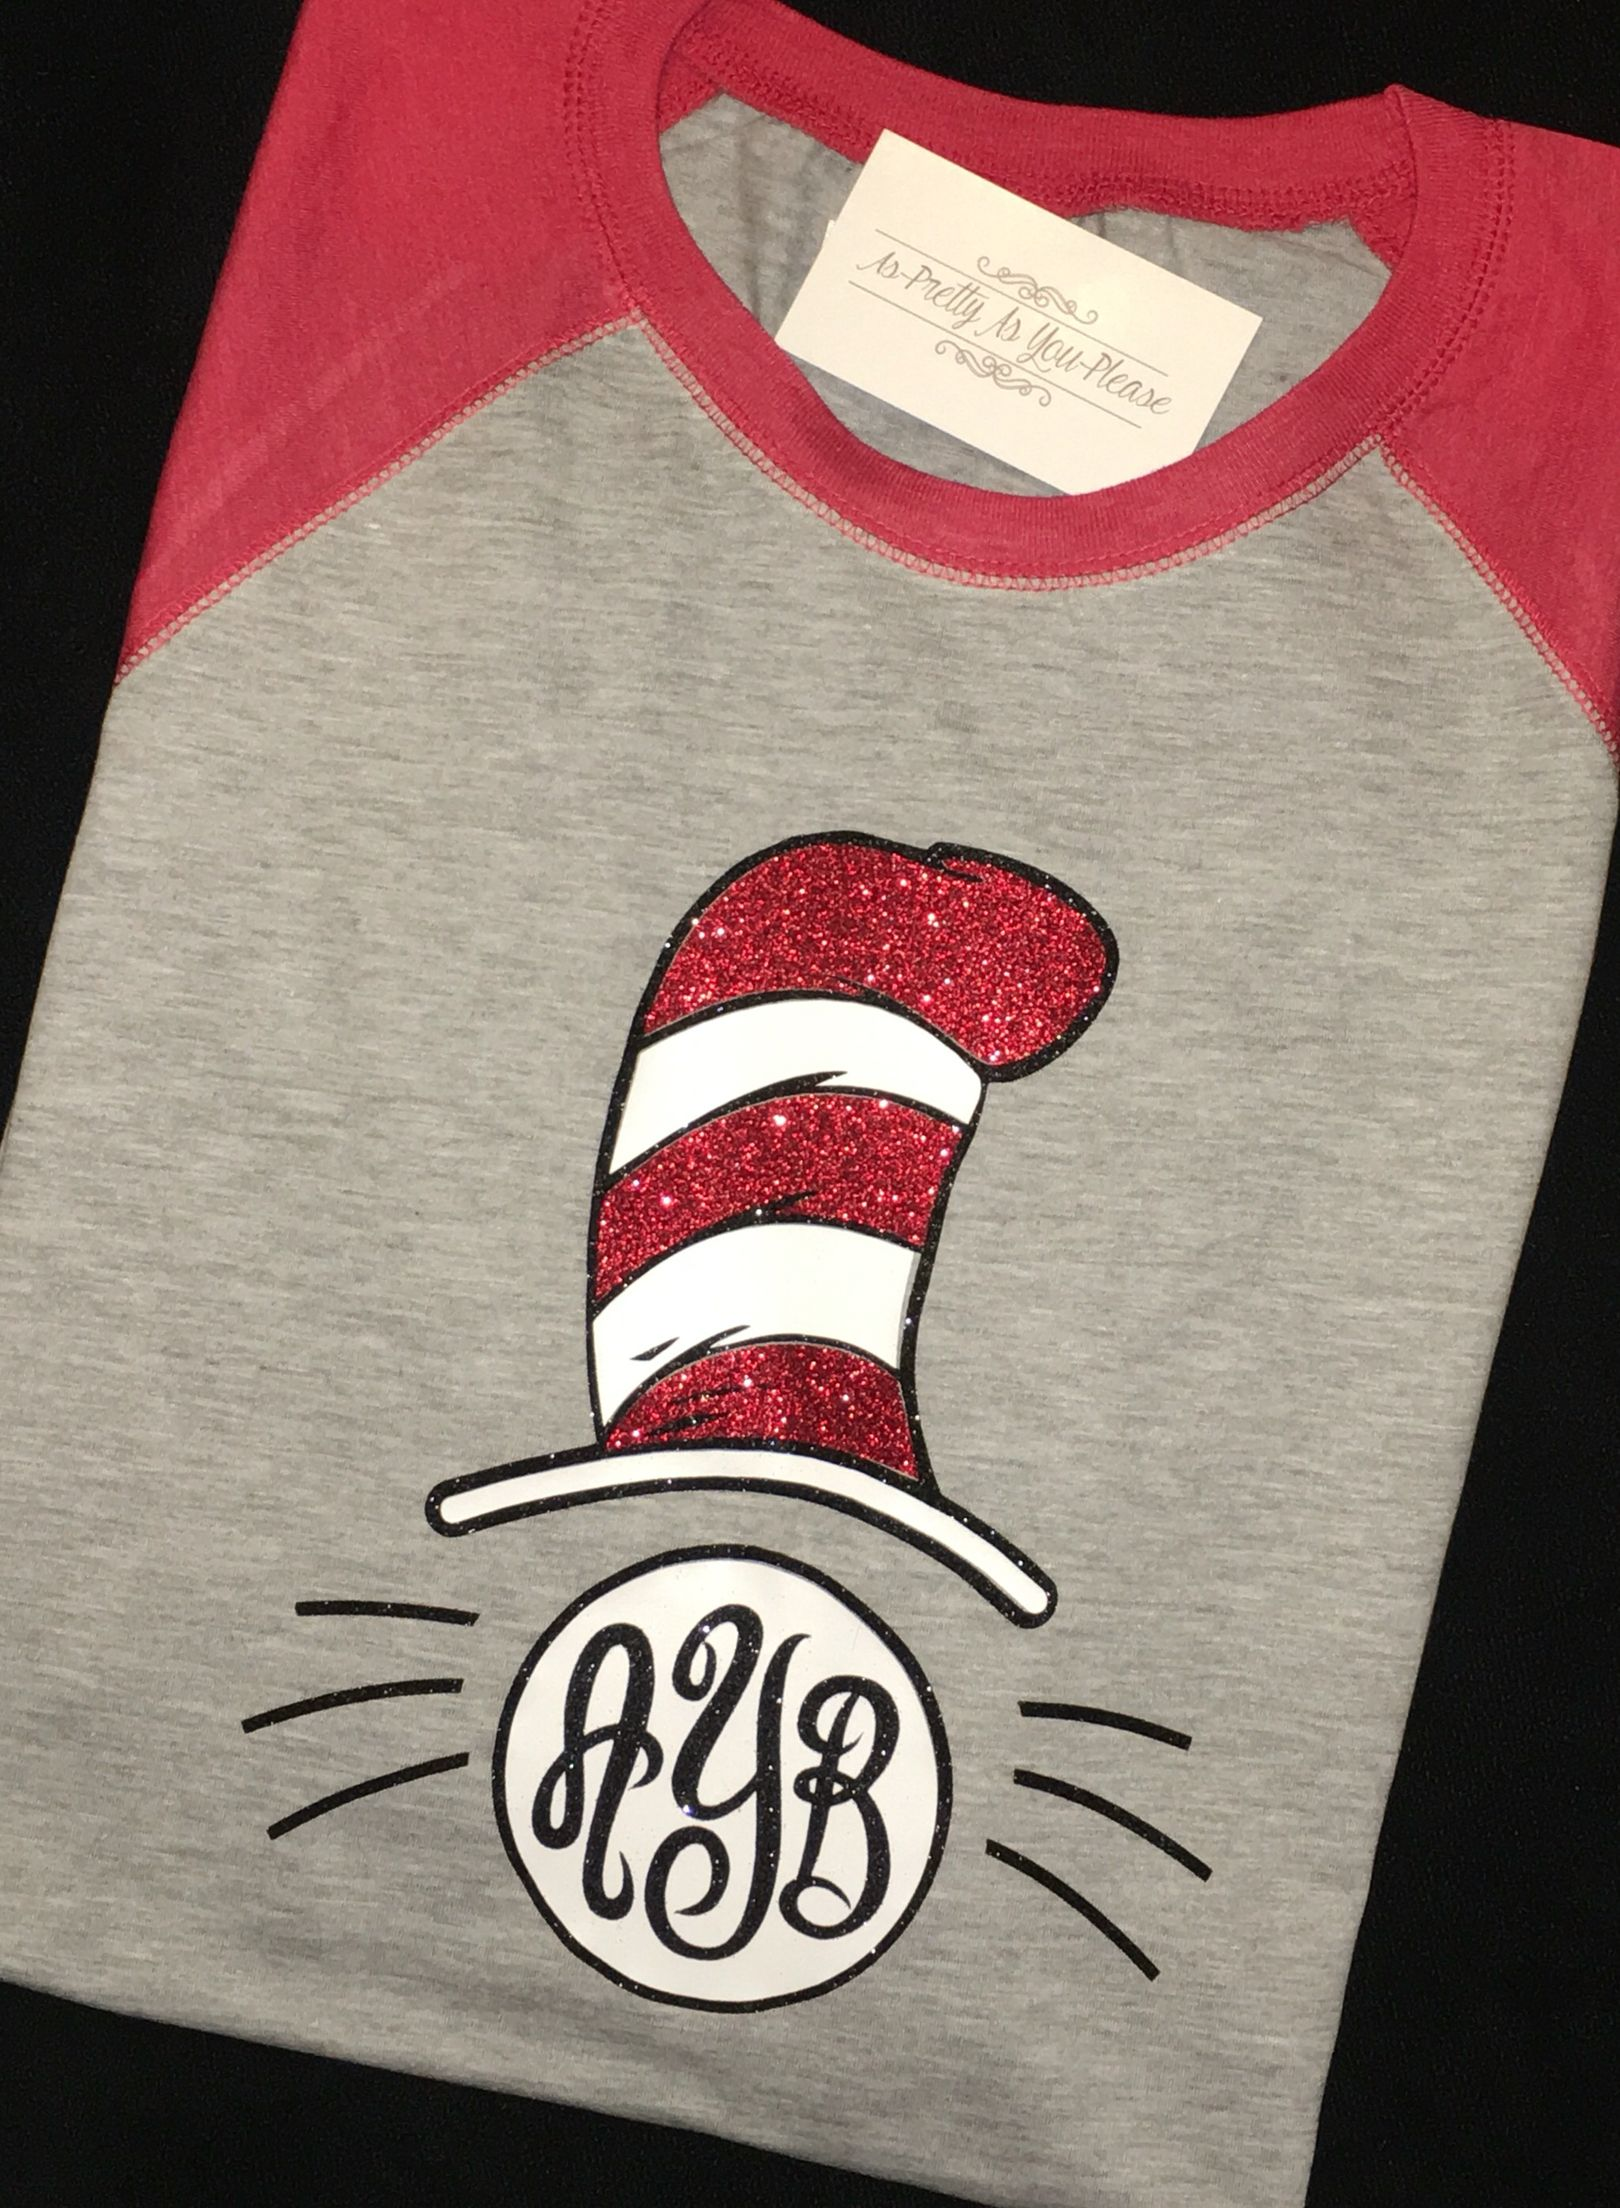 Classroom T Shirt Design ~ Dr suess cat in the hat custom shirts as pretty